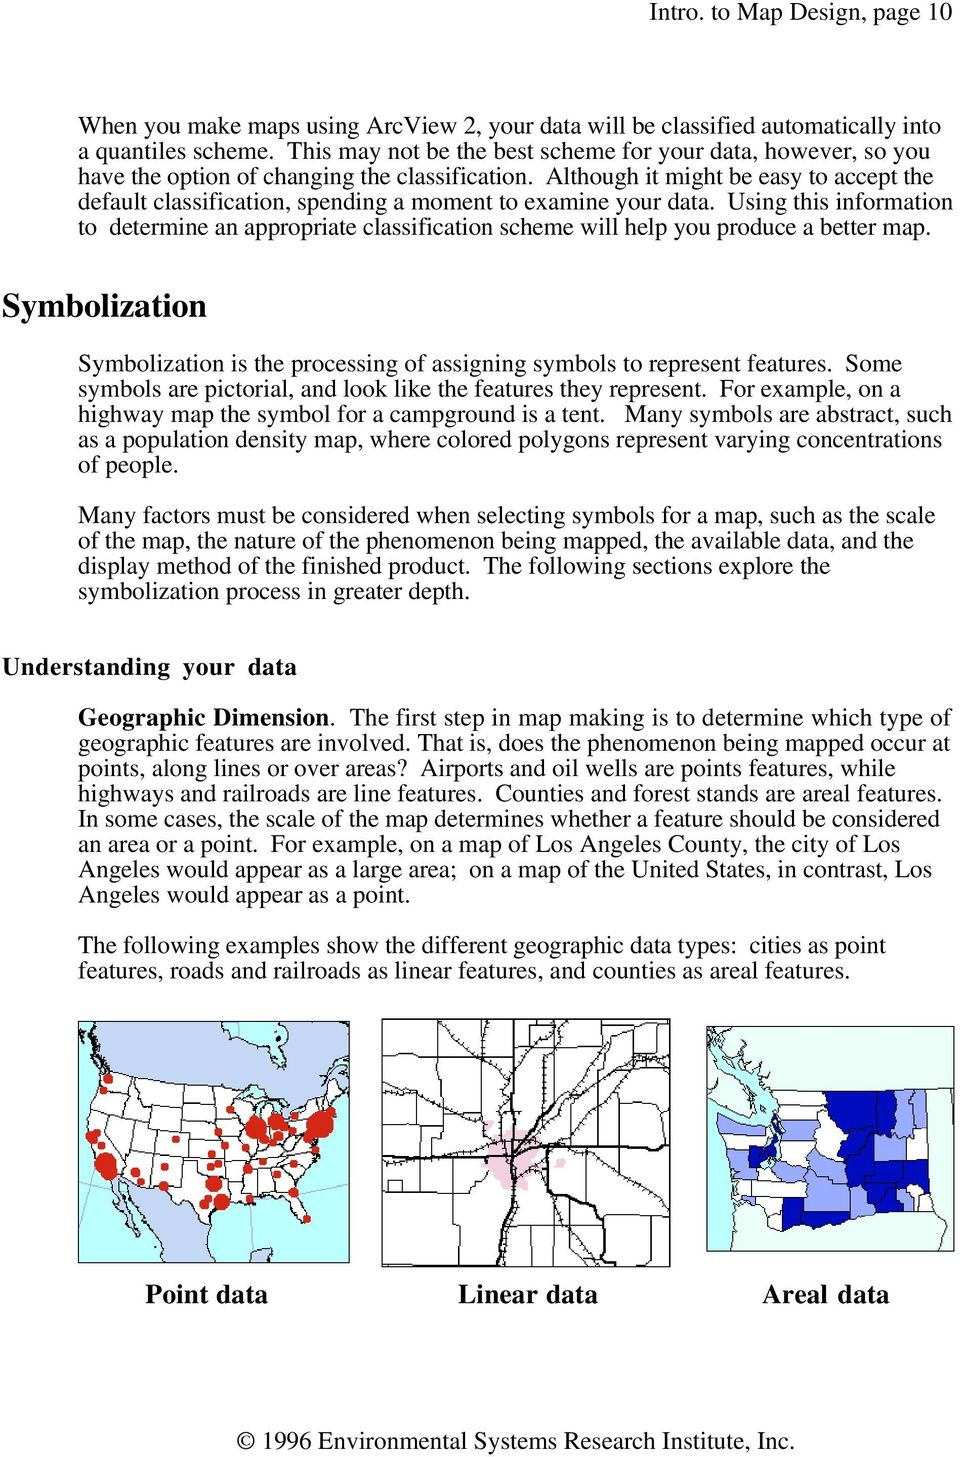 Introduction to Map Design - PDF